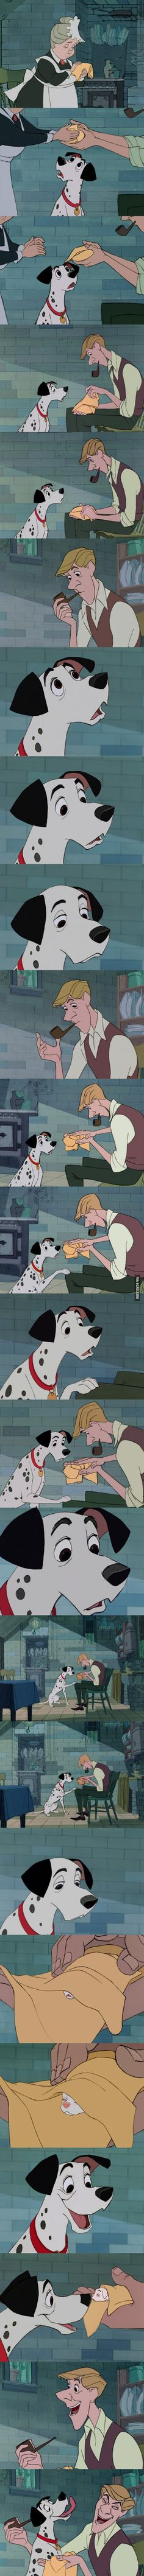 101 Dalmations, my favorite thing about this movie is the relationships between the human and canine family members.